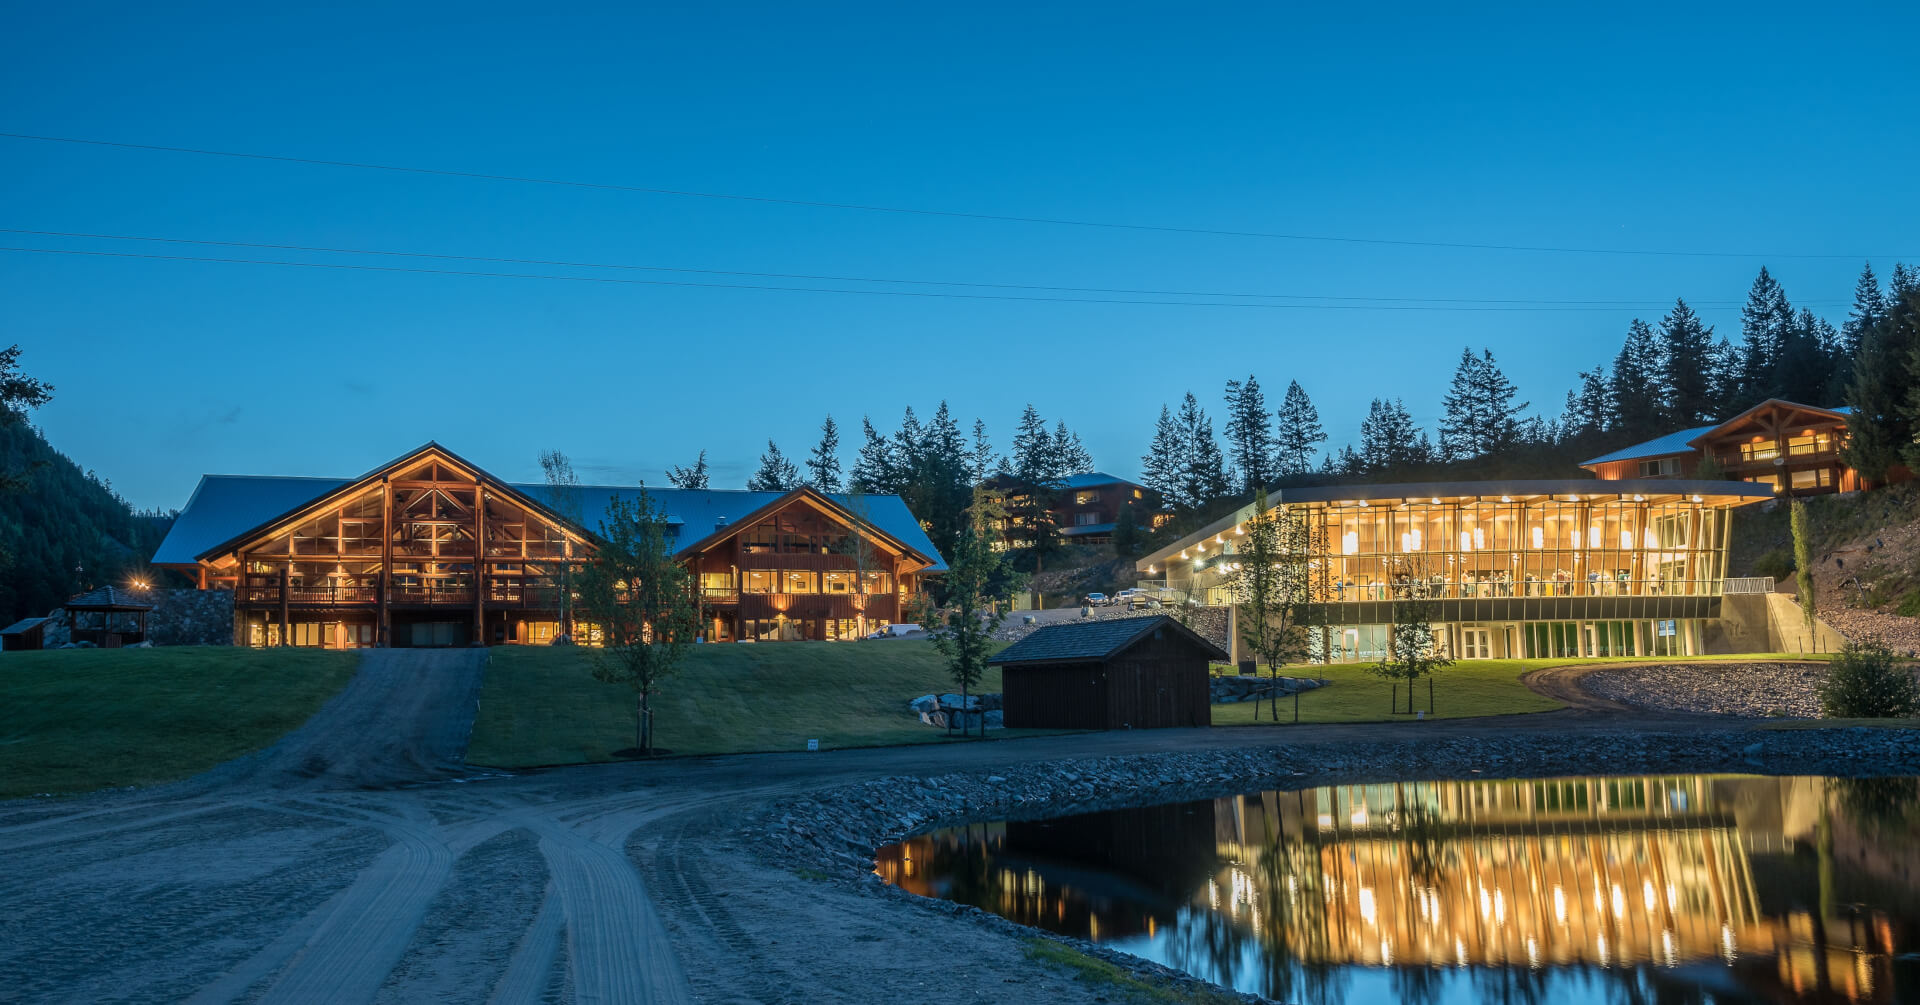 Looking for the Perfect Northwest Retreat or Conference Location?